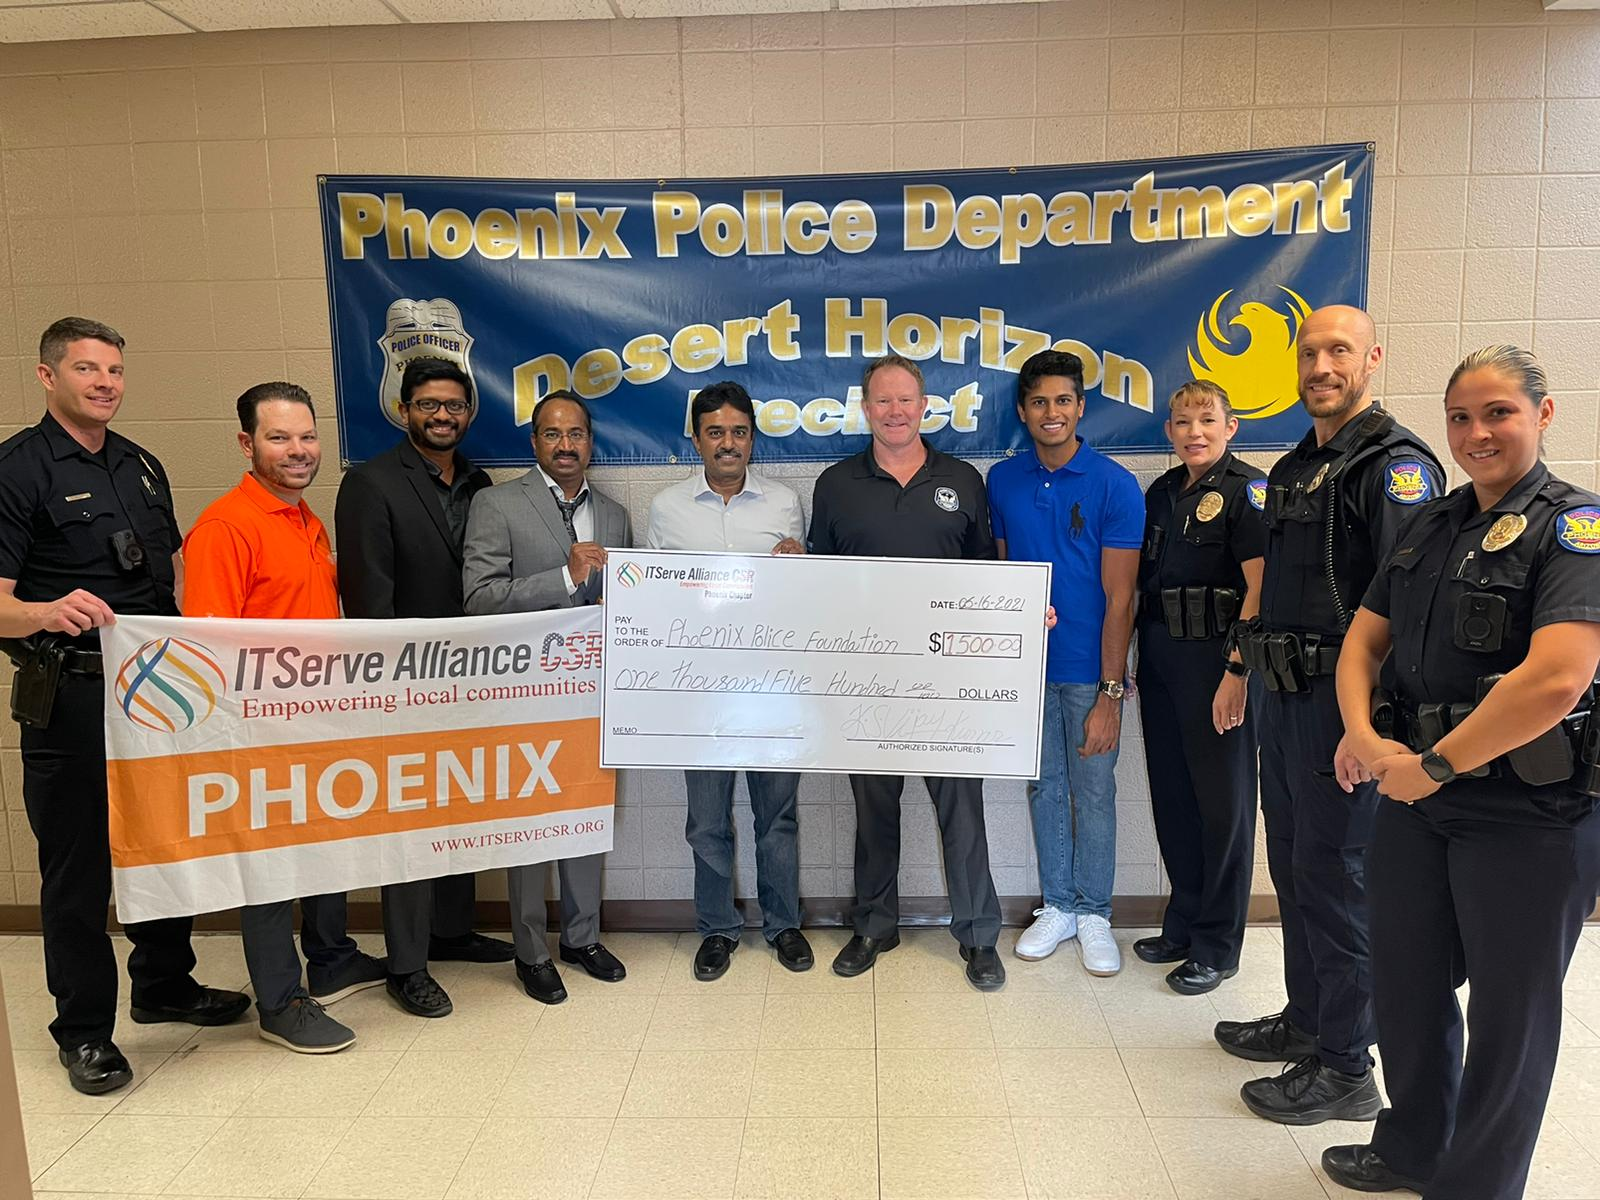 Team Phoenix honored the police department for their dedicated service and support to the community